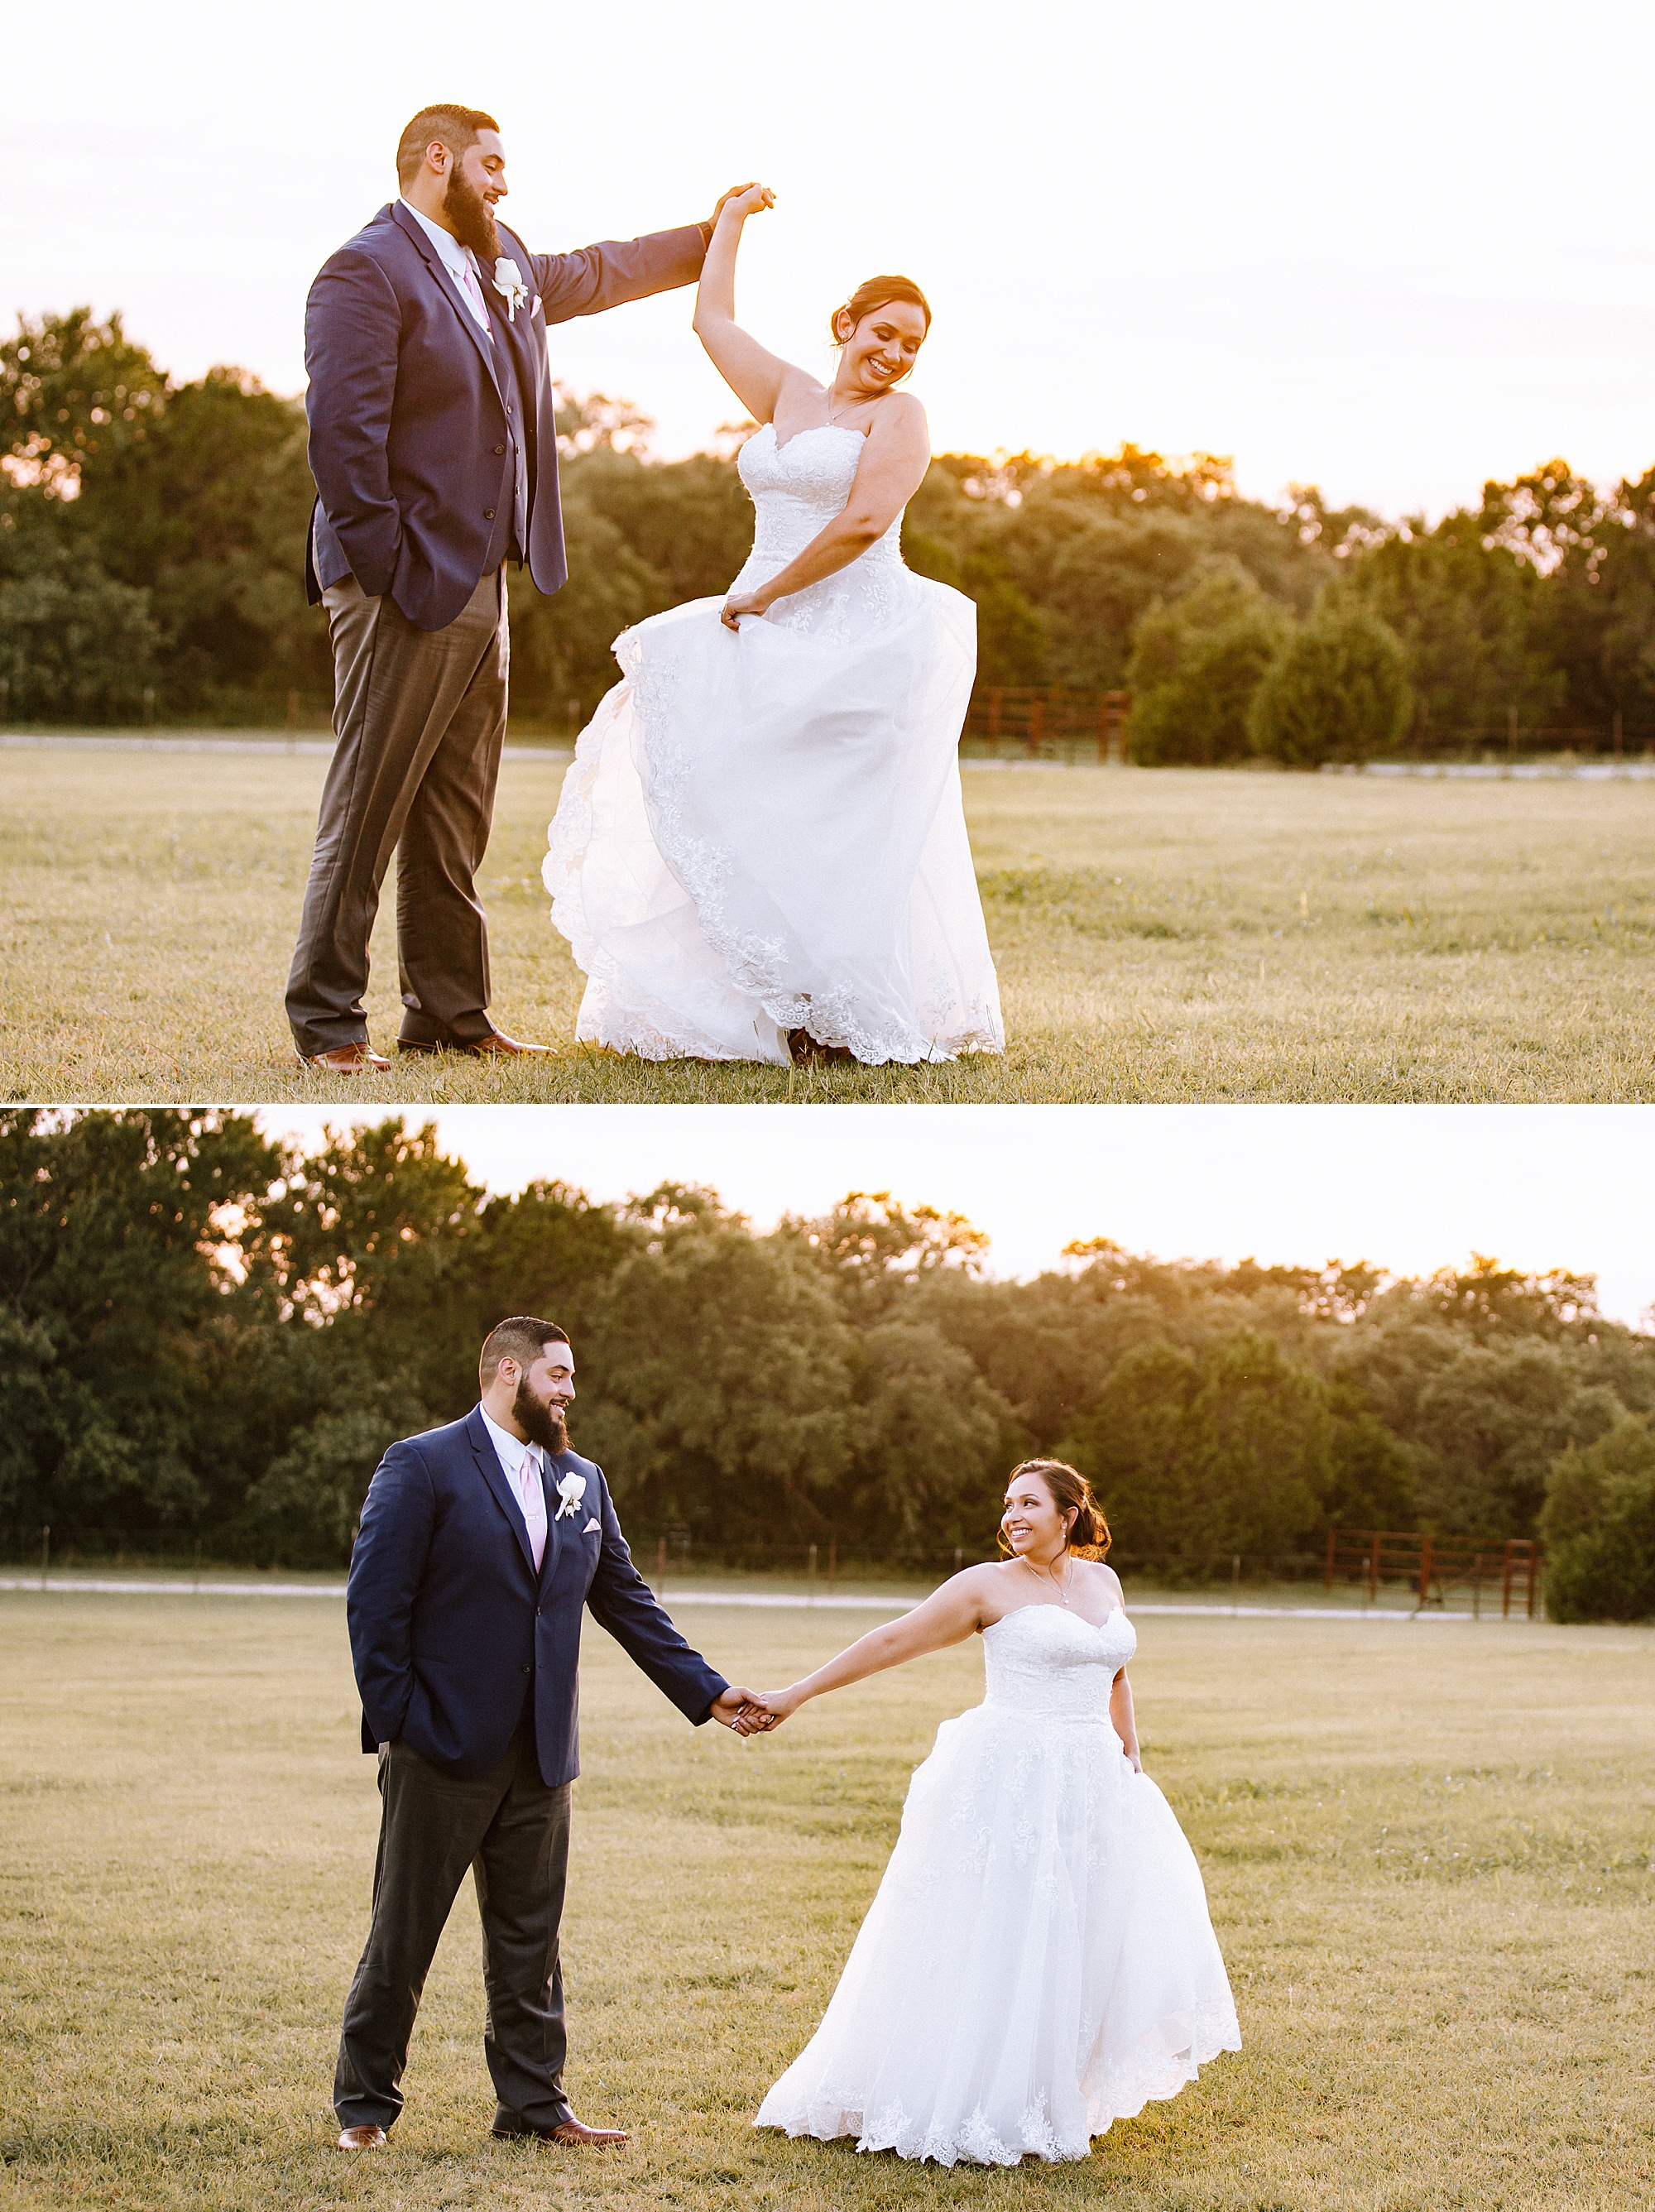 Wedding-Photographer-Bulverde-Texas-Western-Sky-Event-Venue-Carly-Barton-Photography_0053.jpg